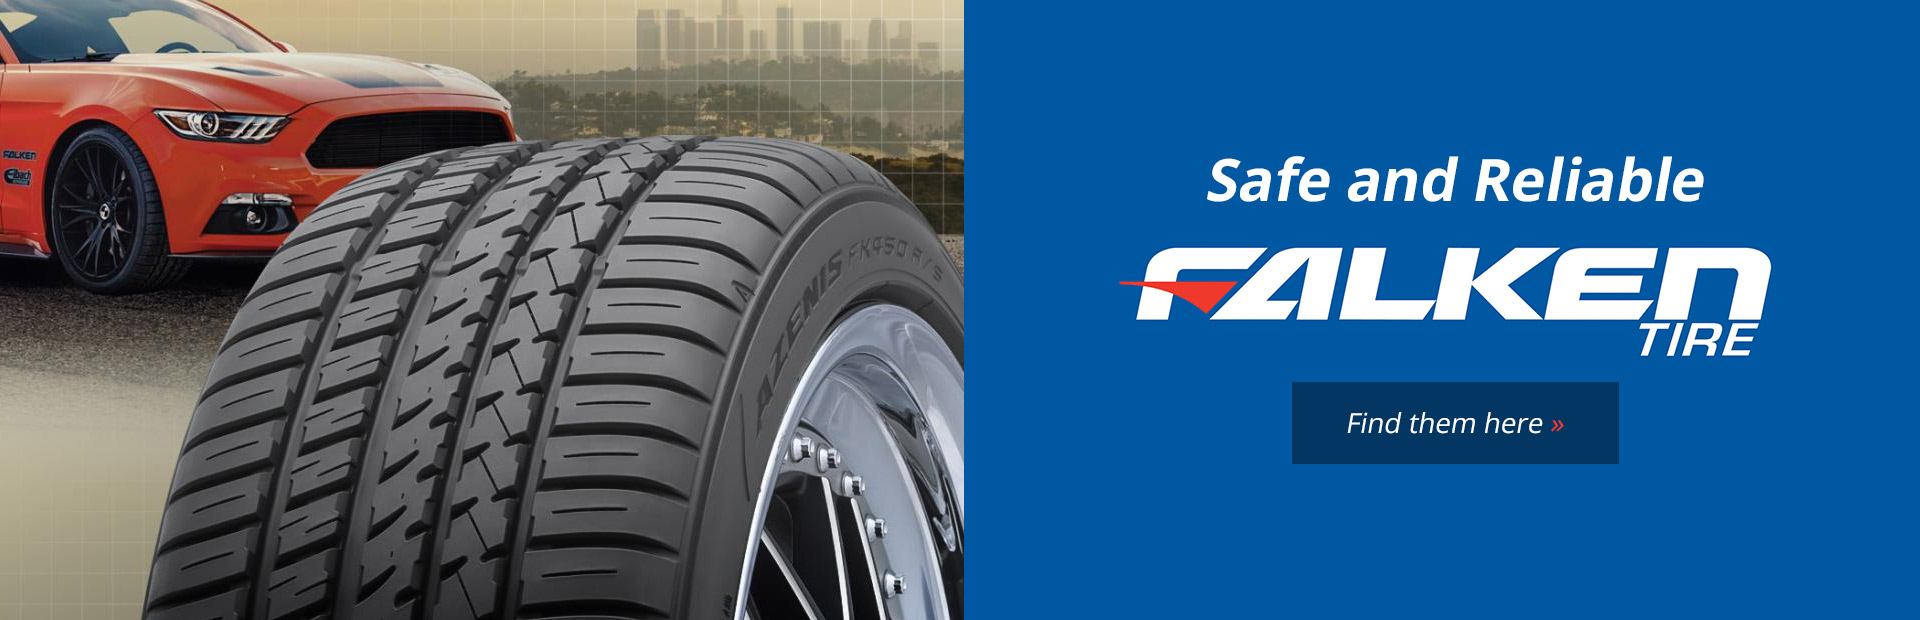 Click here to view Falken tires.